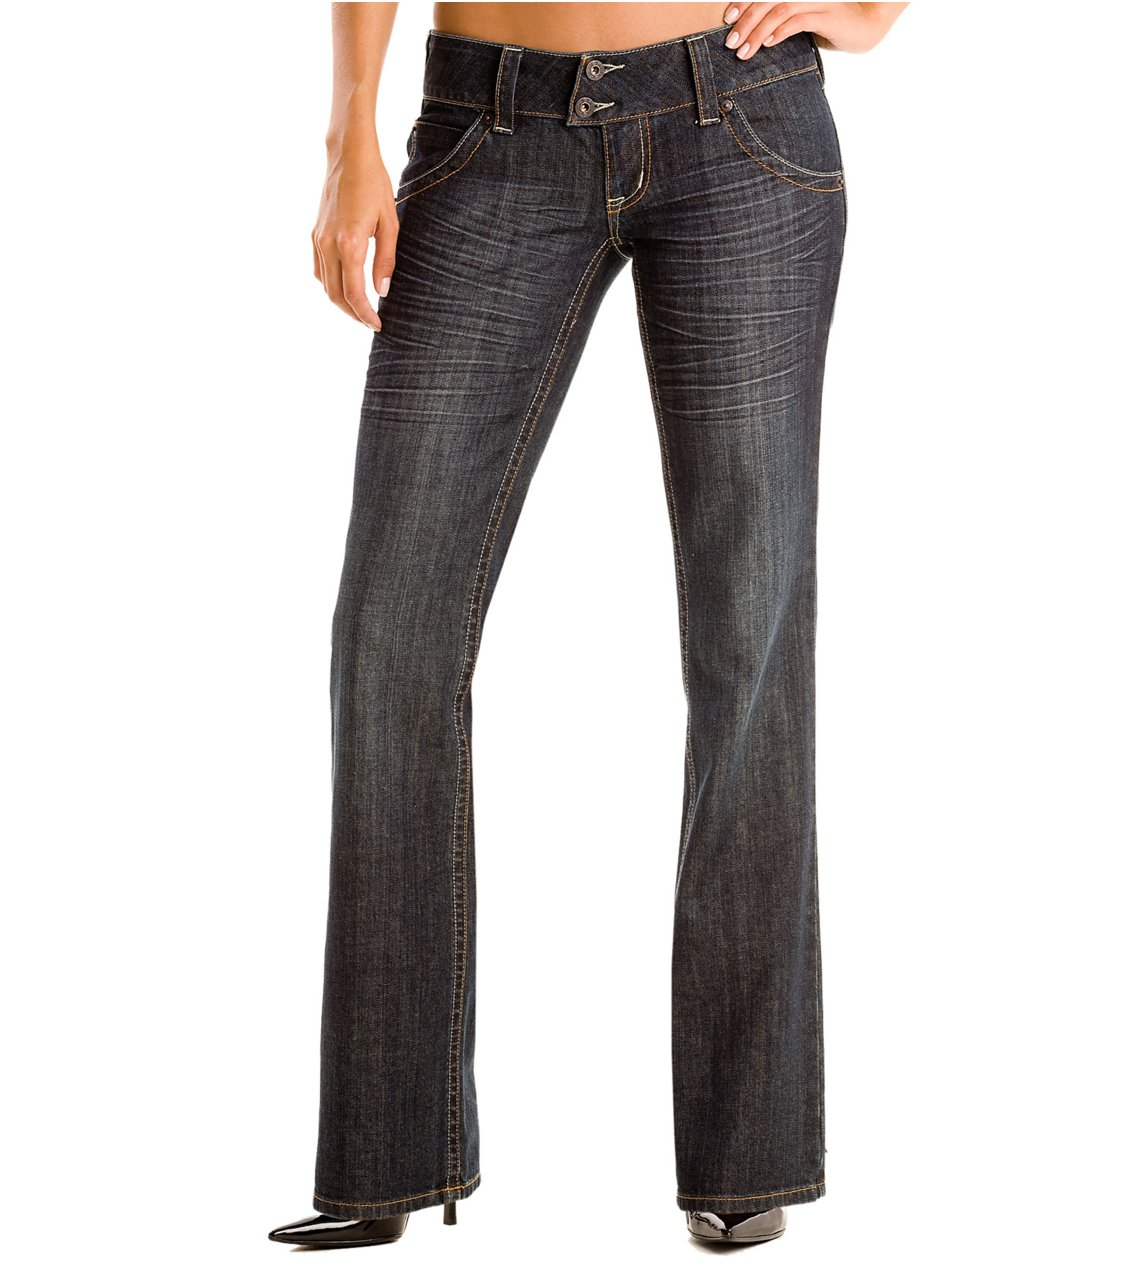 G by GUESS Claudia Whiskey Bootcut Jeans BLUE 24